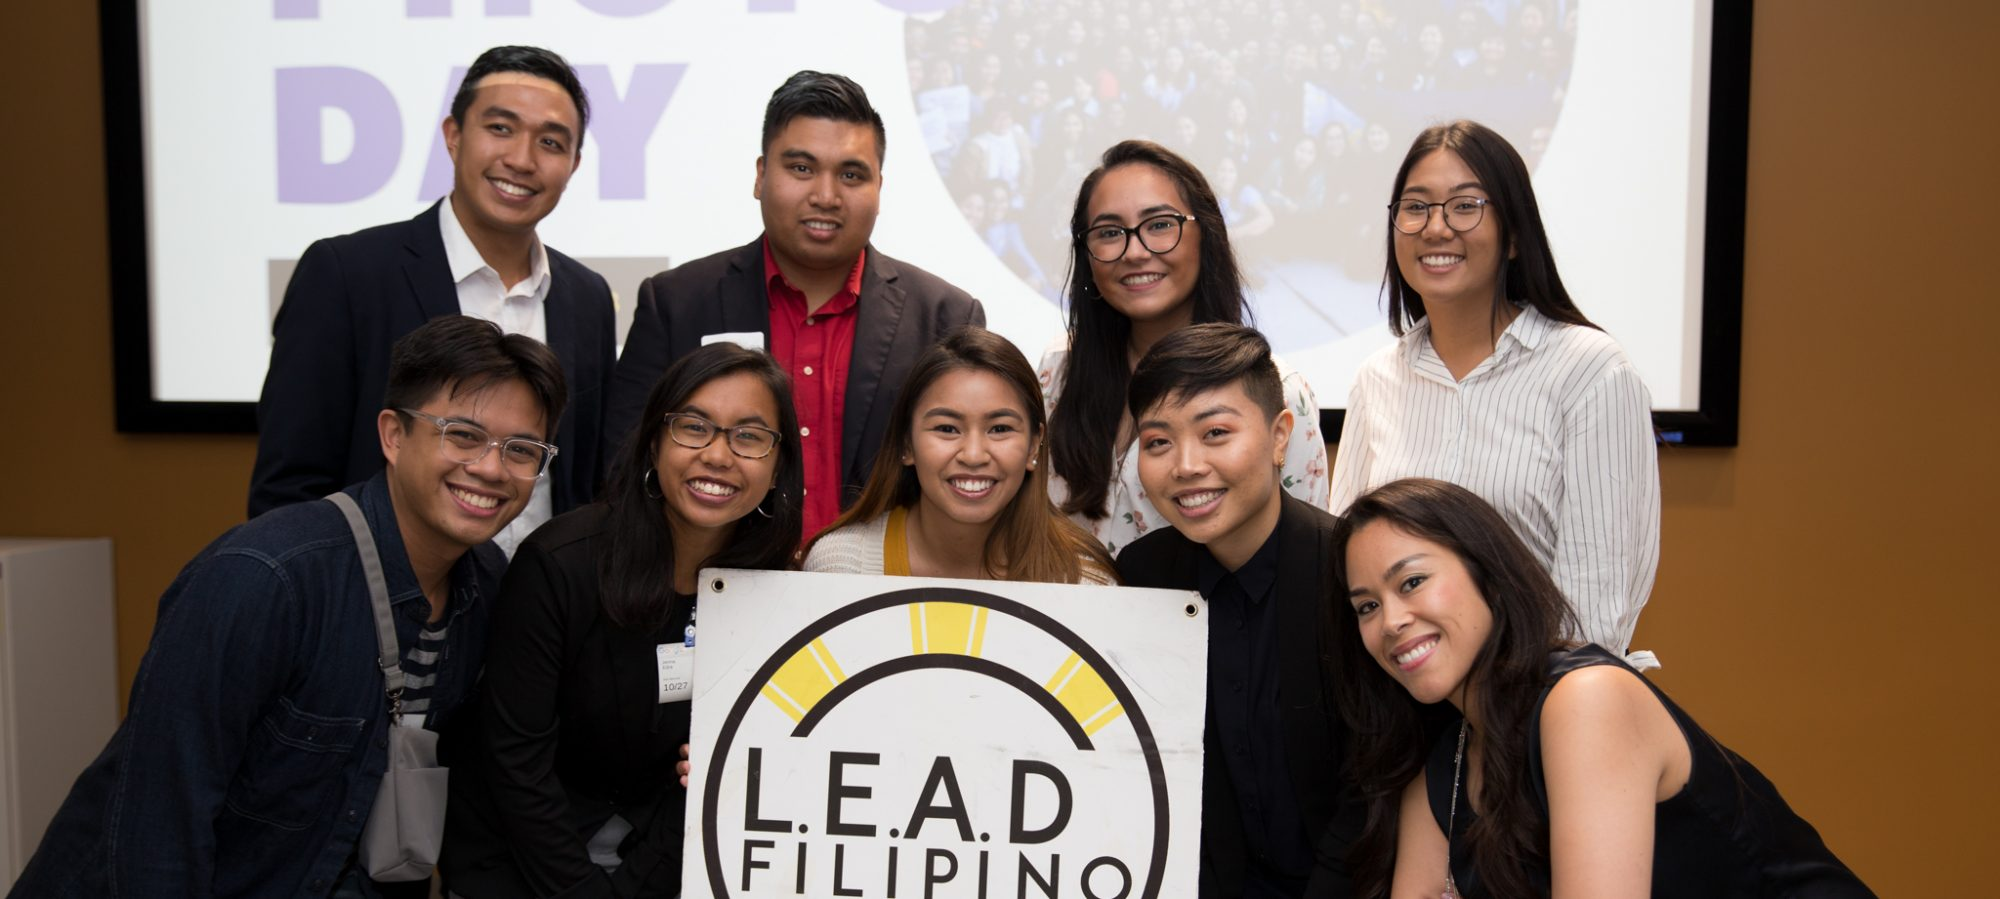 LEAD Filipino